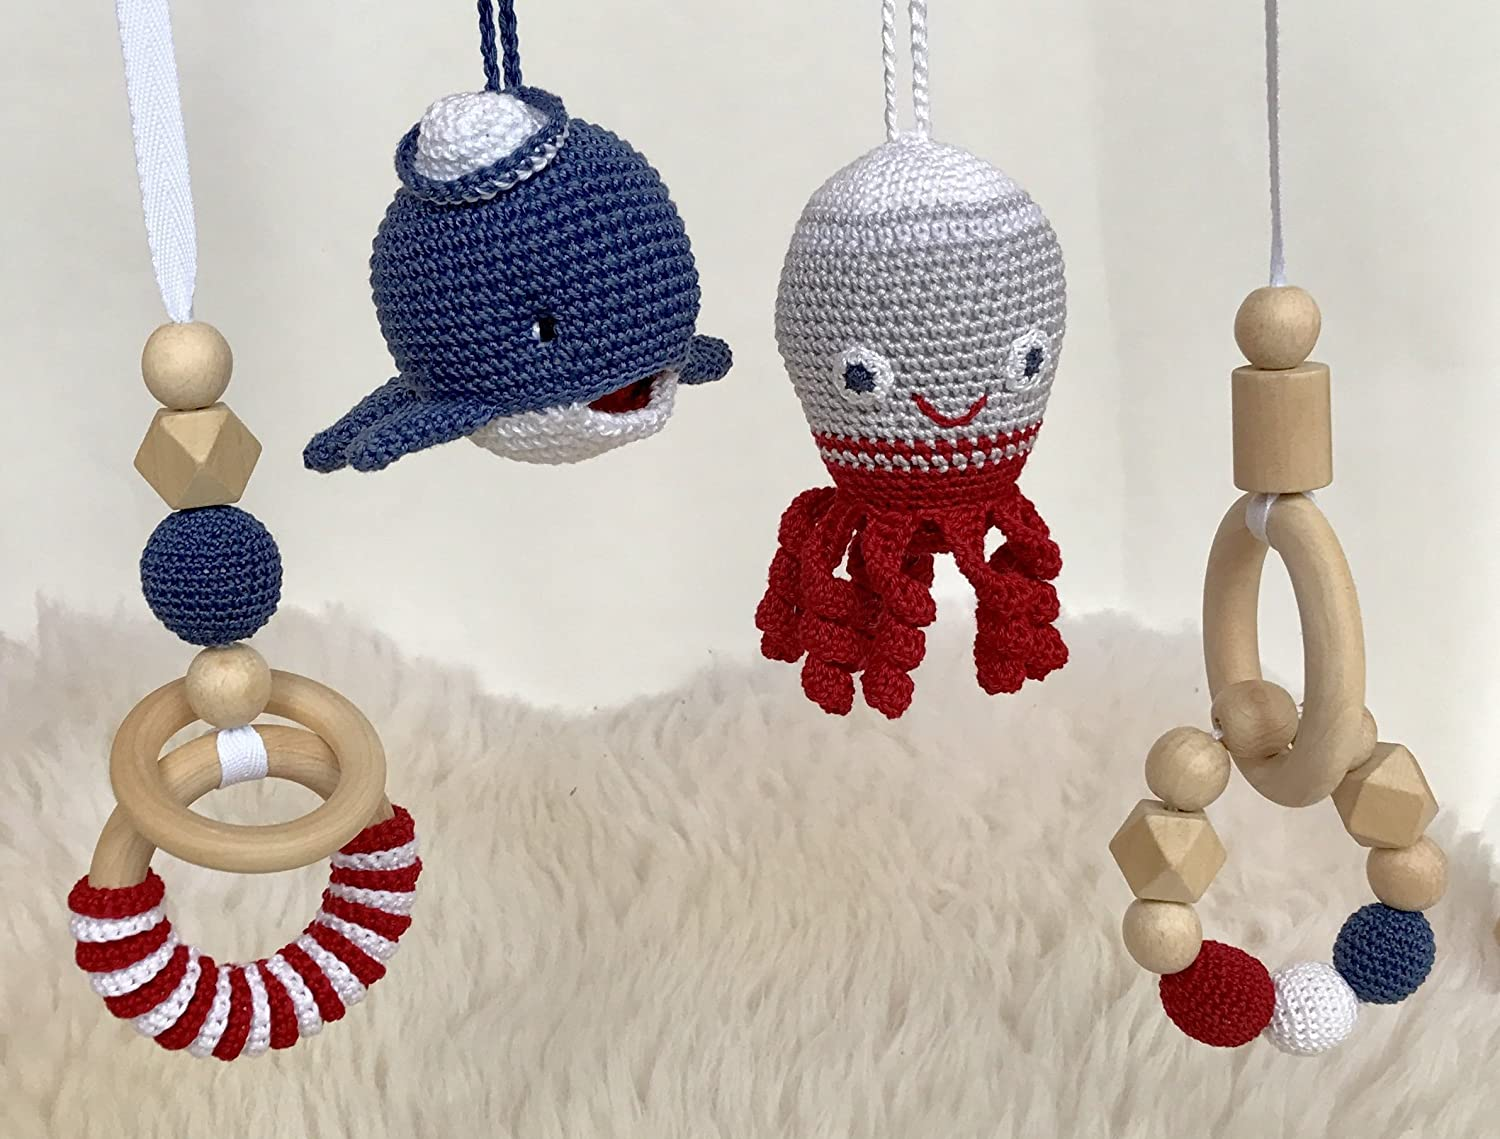 Baby gym mobiles set of 4. Whale, octopus crochet rattle, wooden rings. Play gym accessories. Nautical navy, red. Handmade in Easter Europe